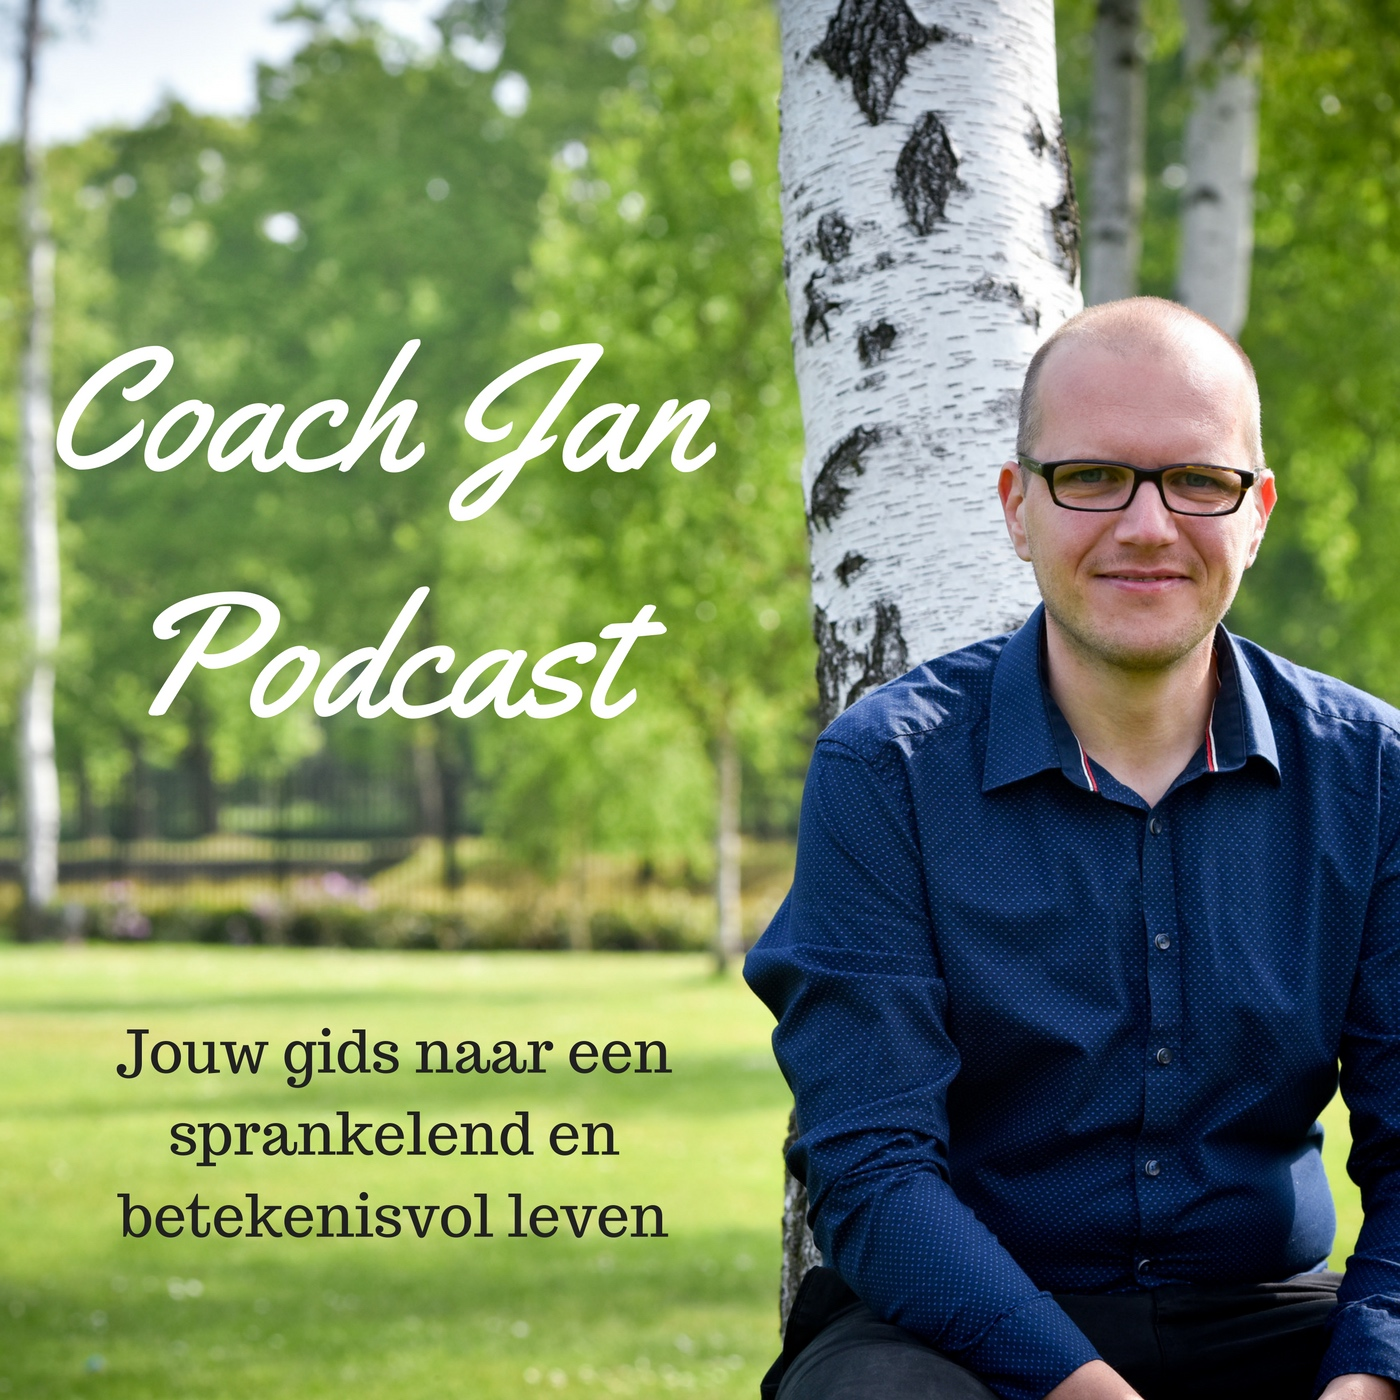 Coach Jan Podcast